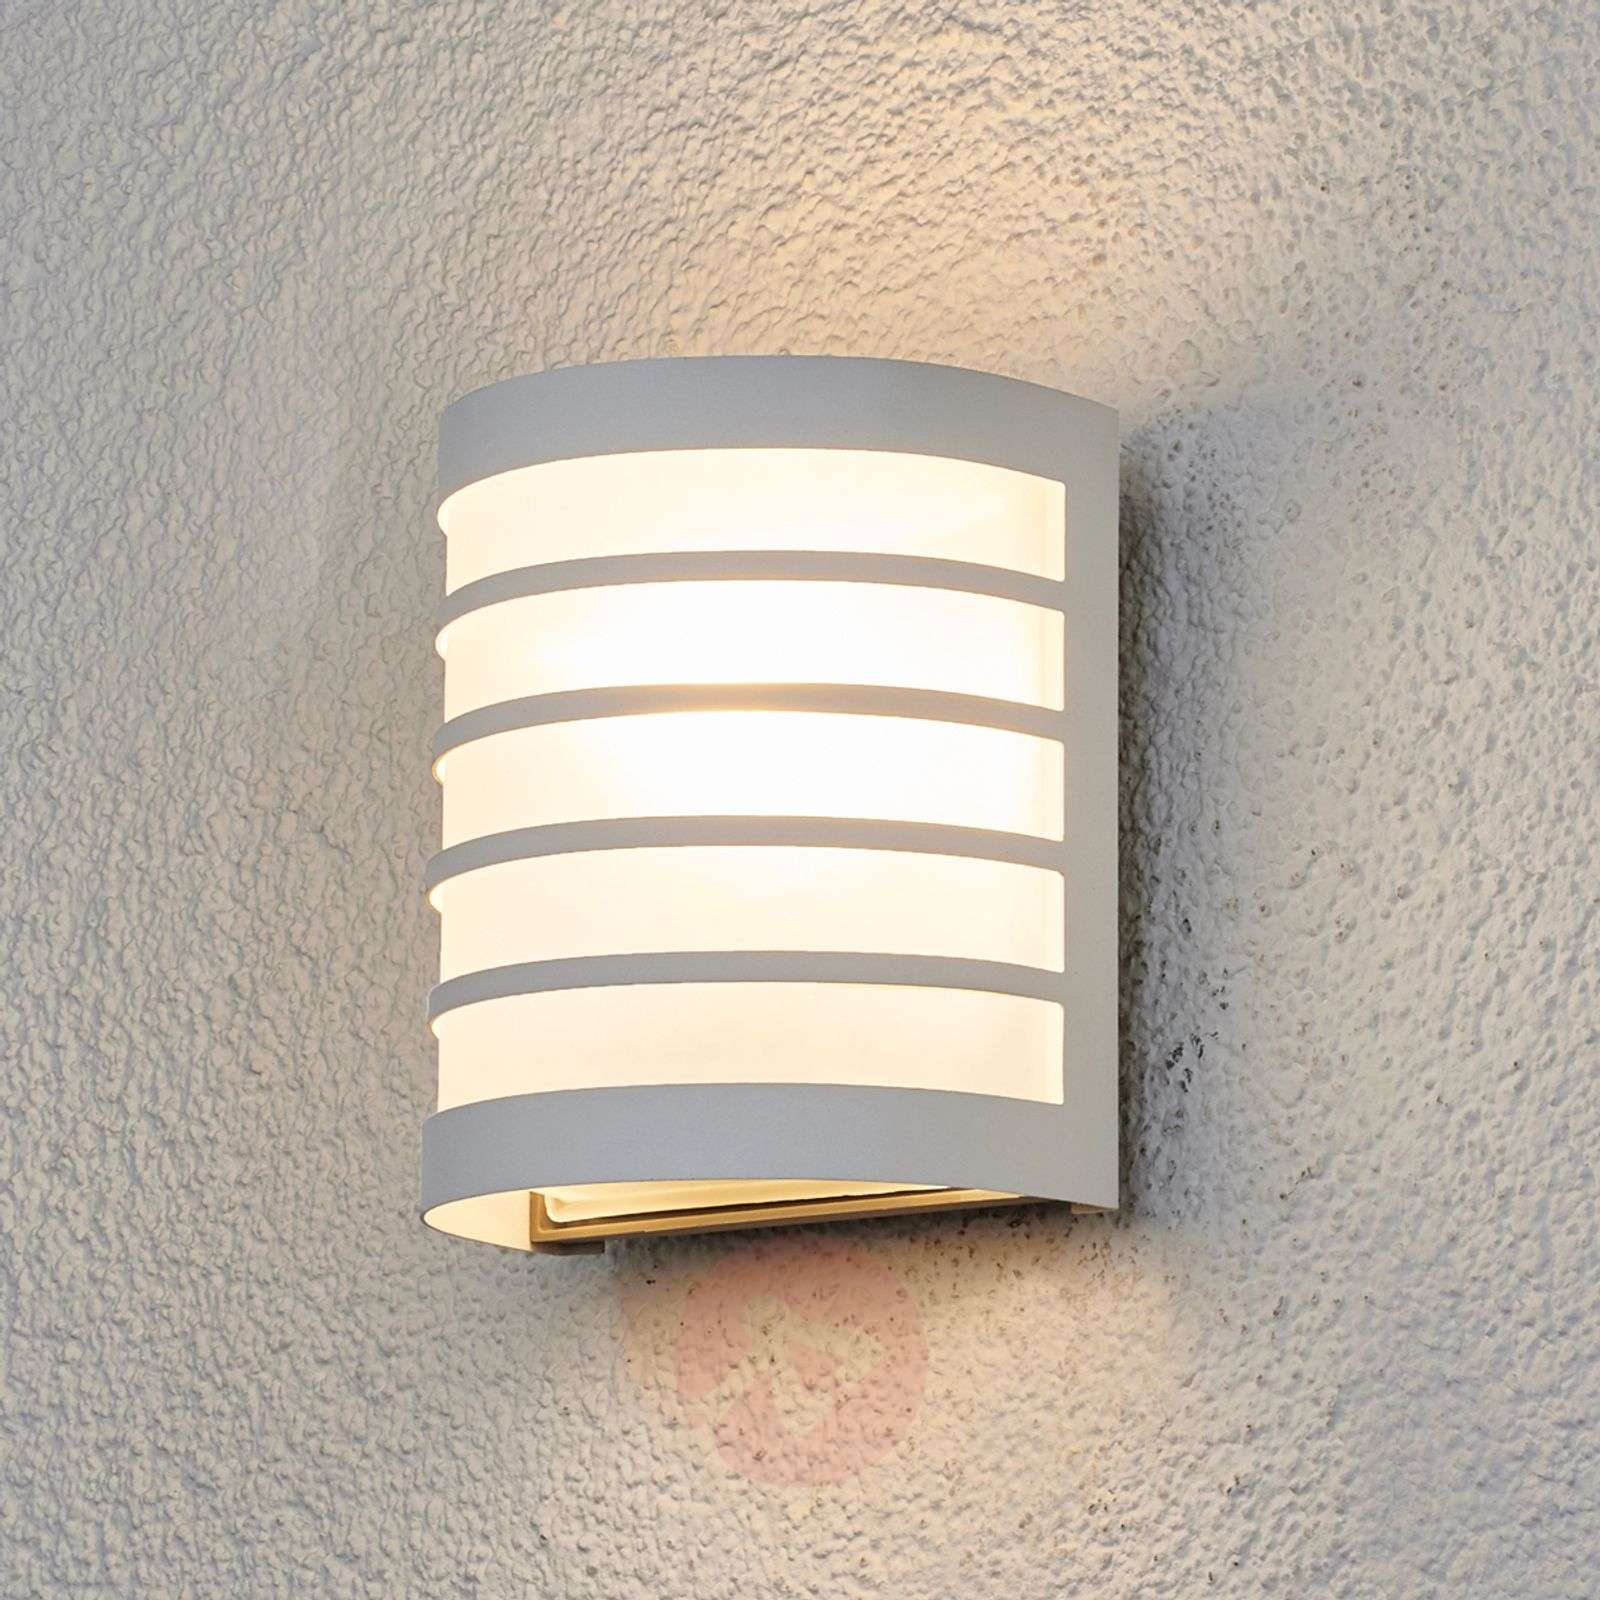 white outdoor wall lights outside wall calin white outdoor wall light with striped look996004209 look lightscouk